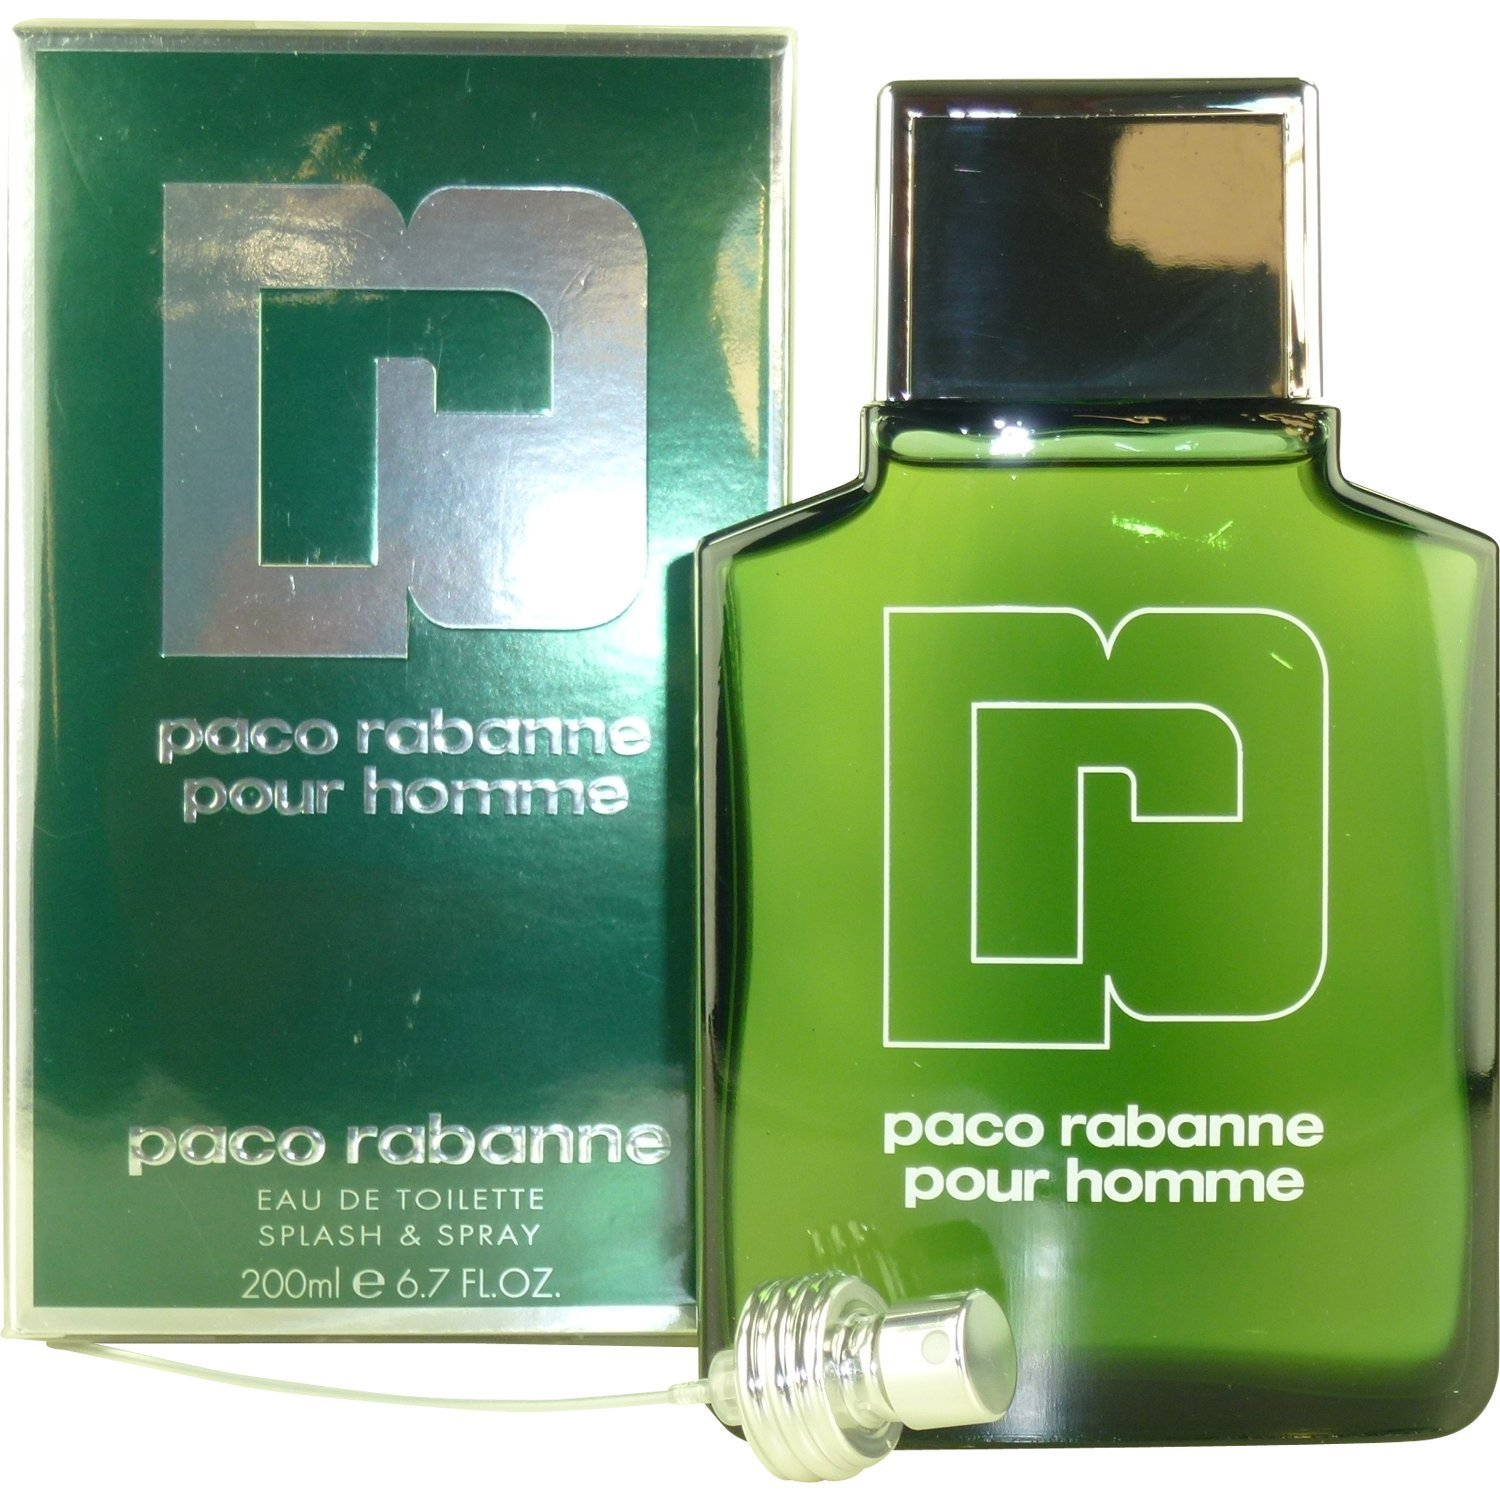 Paco Rabanne - Pour Homme Eau De Toilette Splash & Spray 200ml/6.7oz 4118